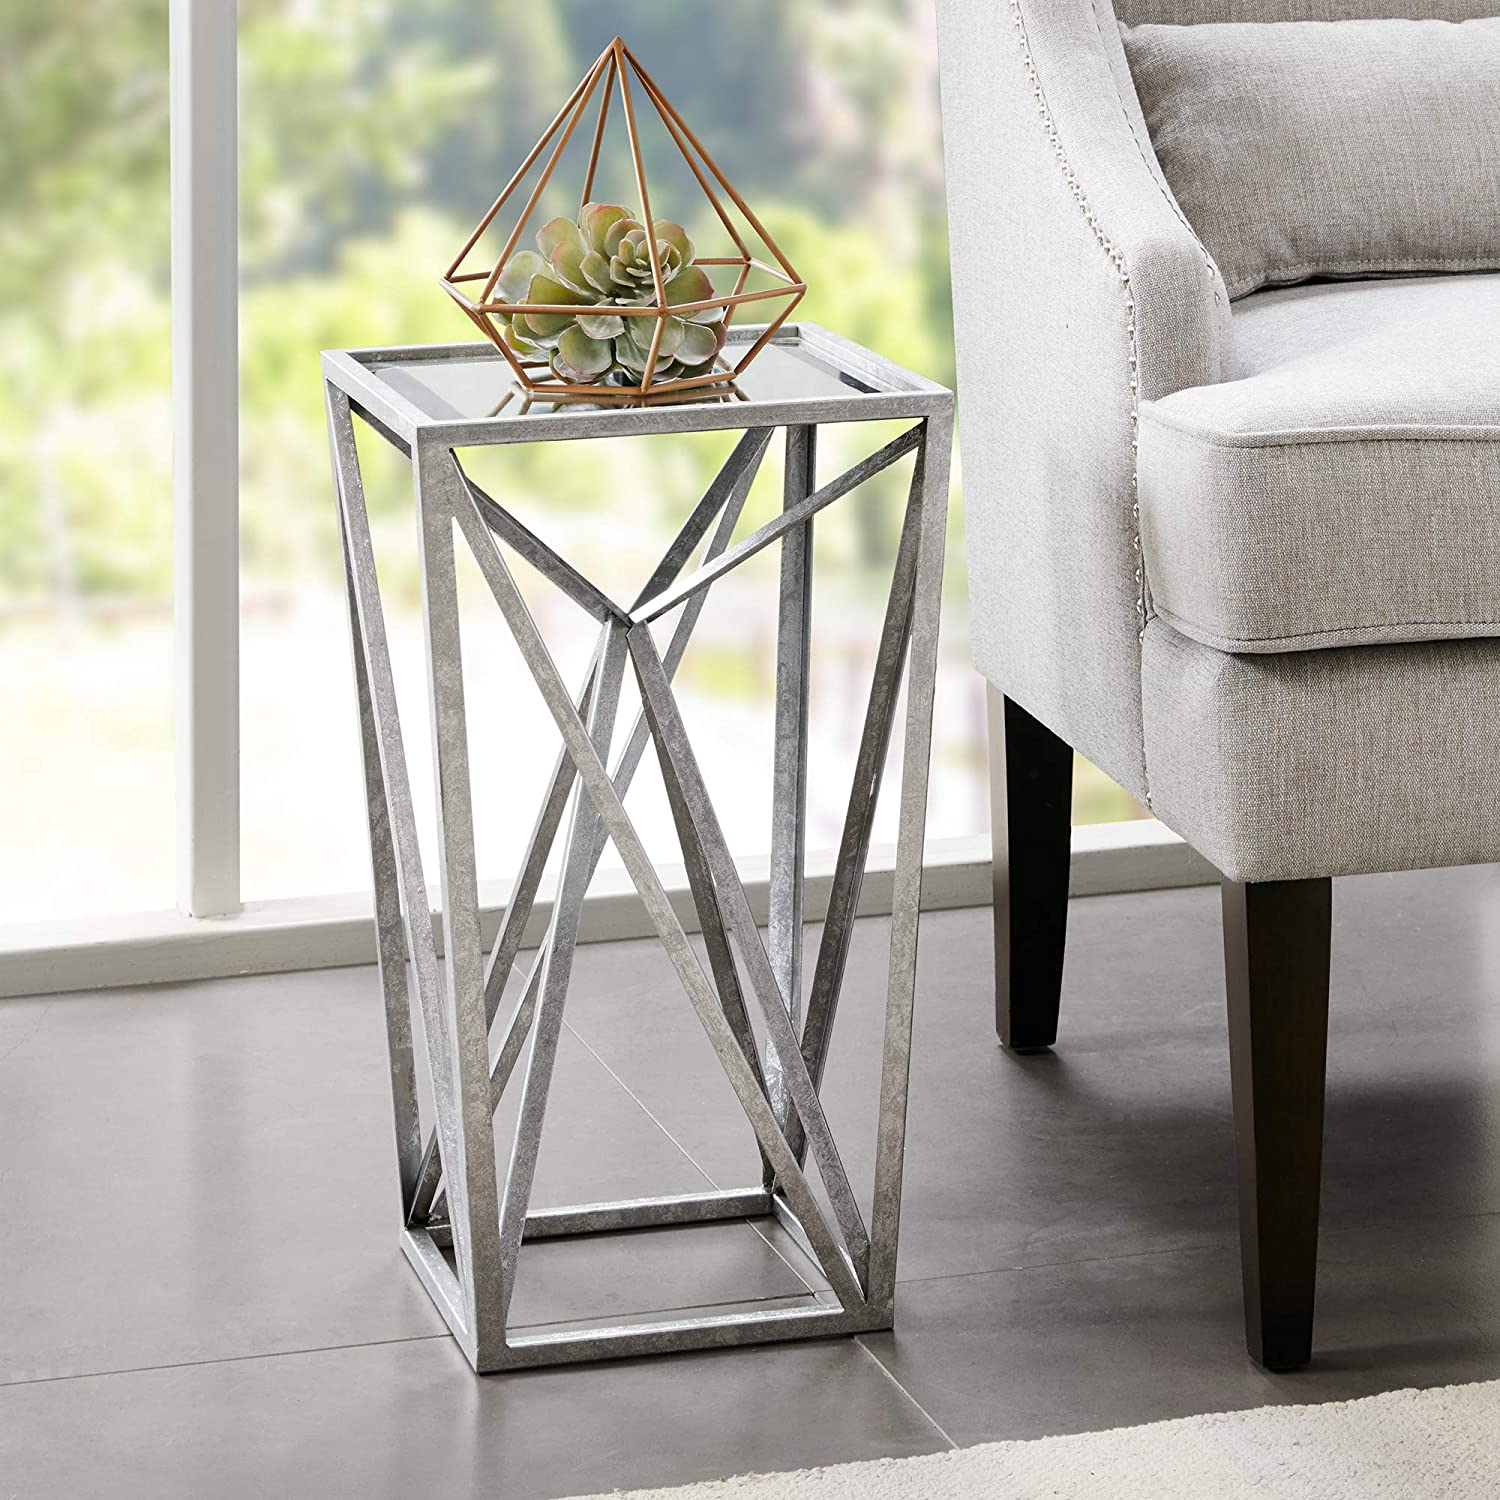 - Amazon.com: Madison Park Zee Accent Tables For Living Room, Glass Top  Hollow, Small Metal Frame Geometric Angular Design Luxe Modern Stylish  Nightstand Bedroom Furniture, Silver: Home & Kitchen